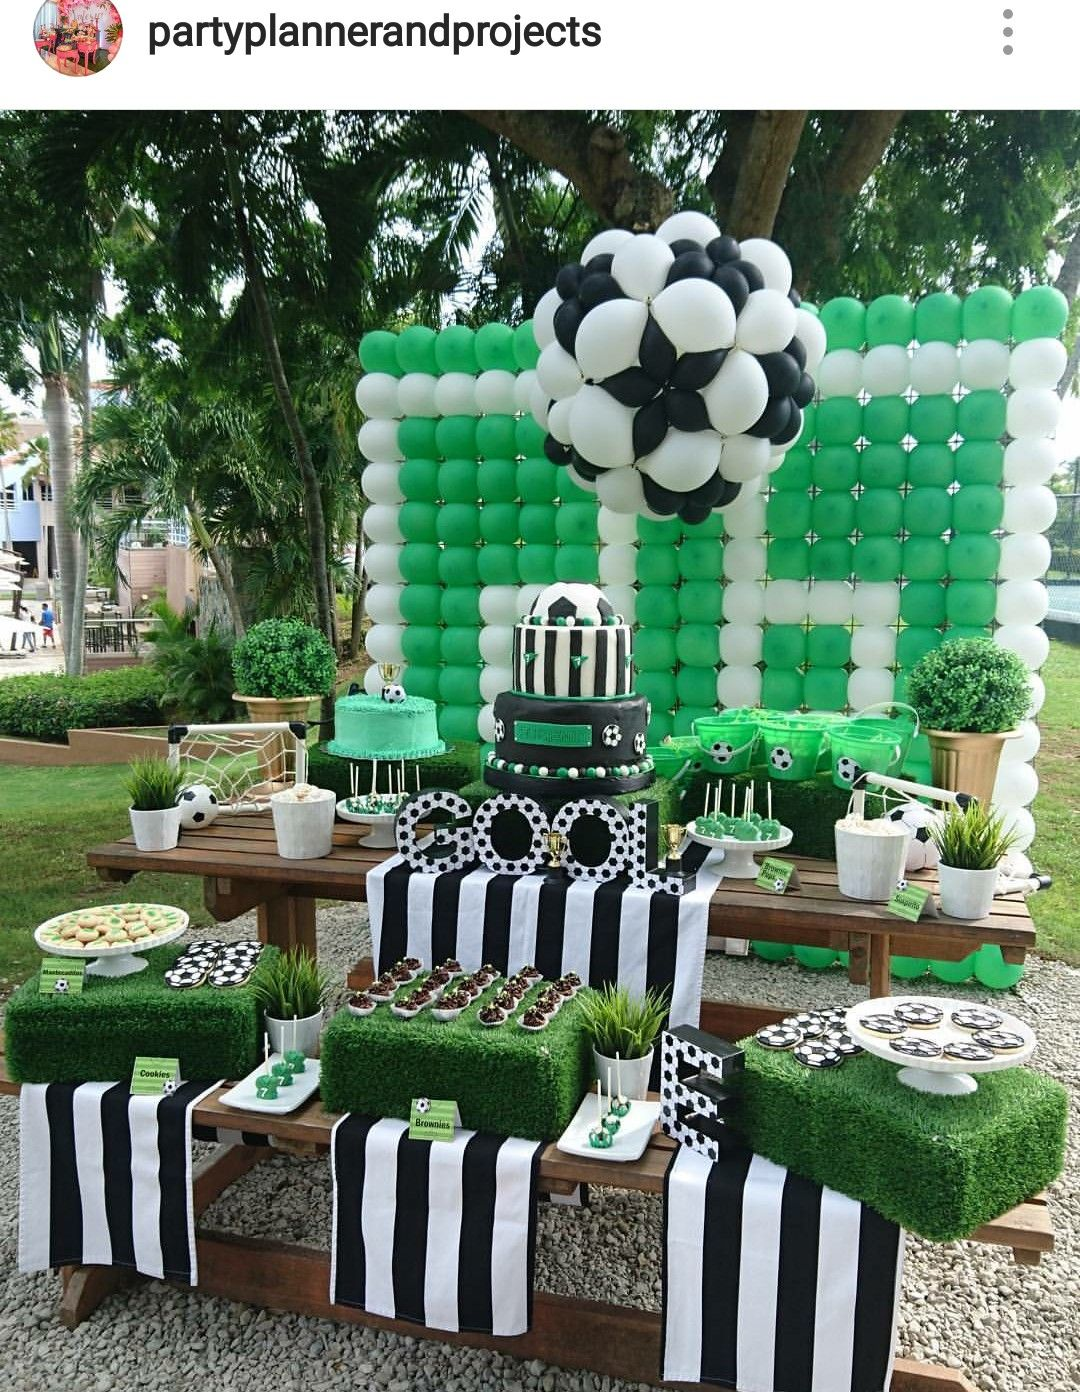 Soccer Theme Birthday Party Dessert Table And Decor Soccer Theme Parties Soccer Birthday Parties Soccer Party Decorations